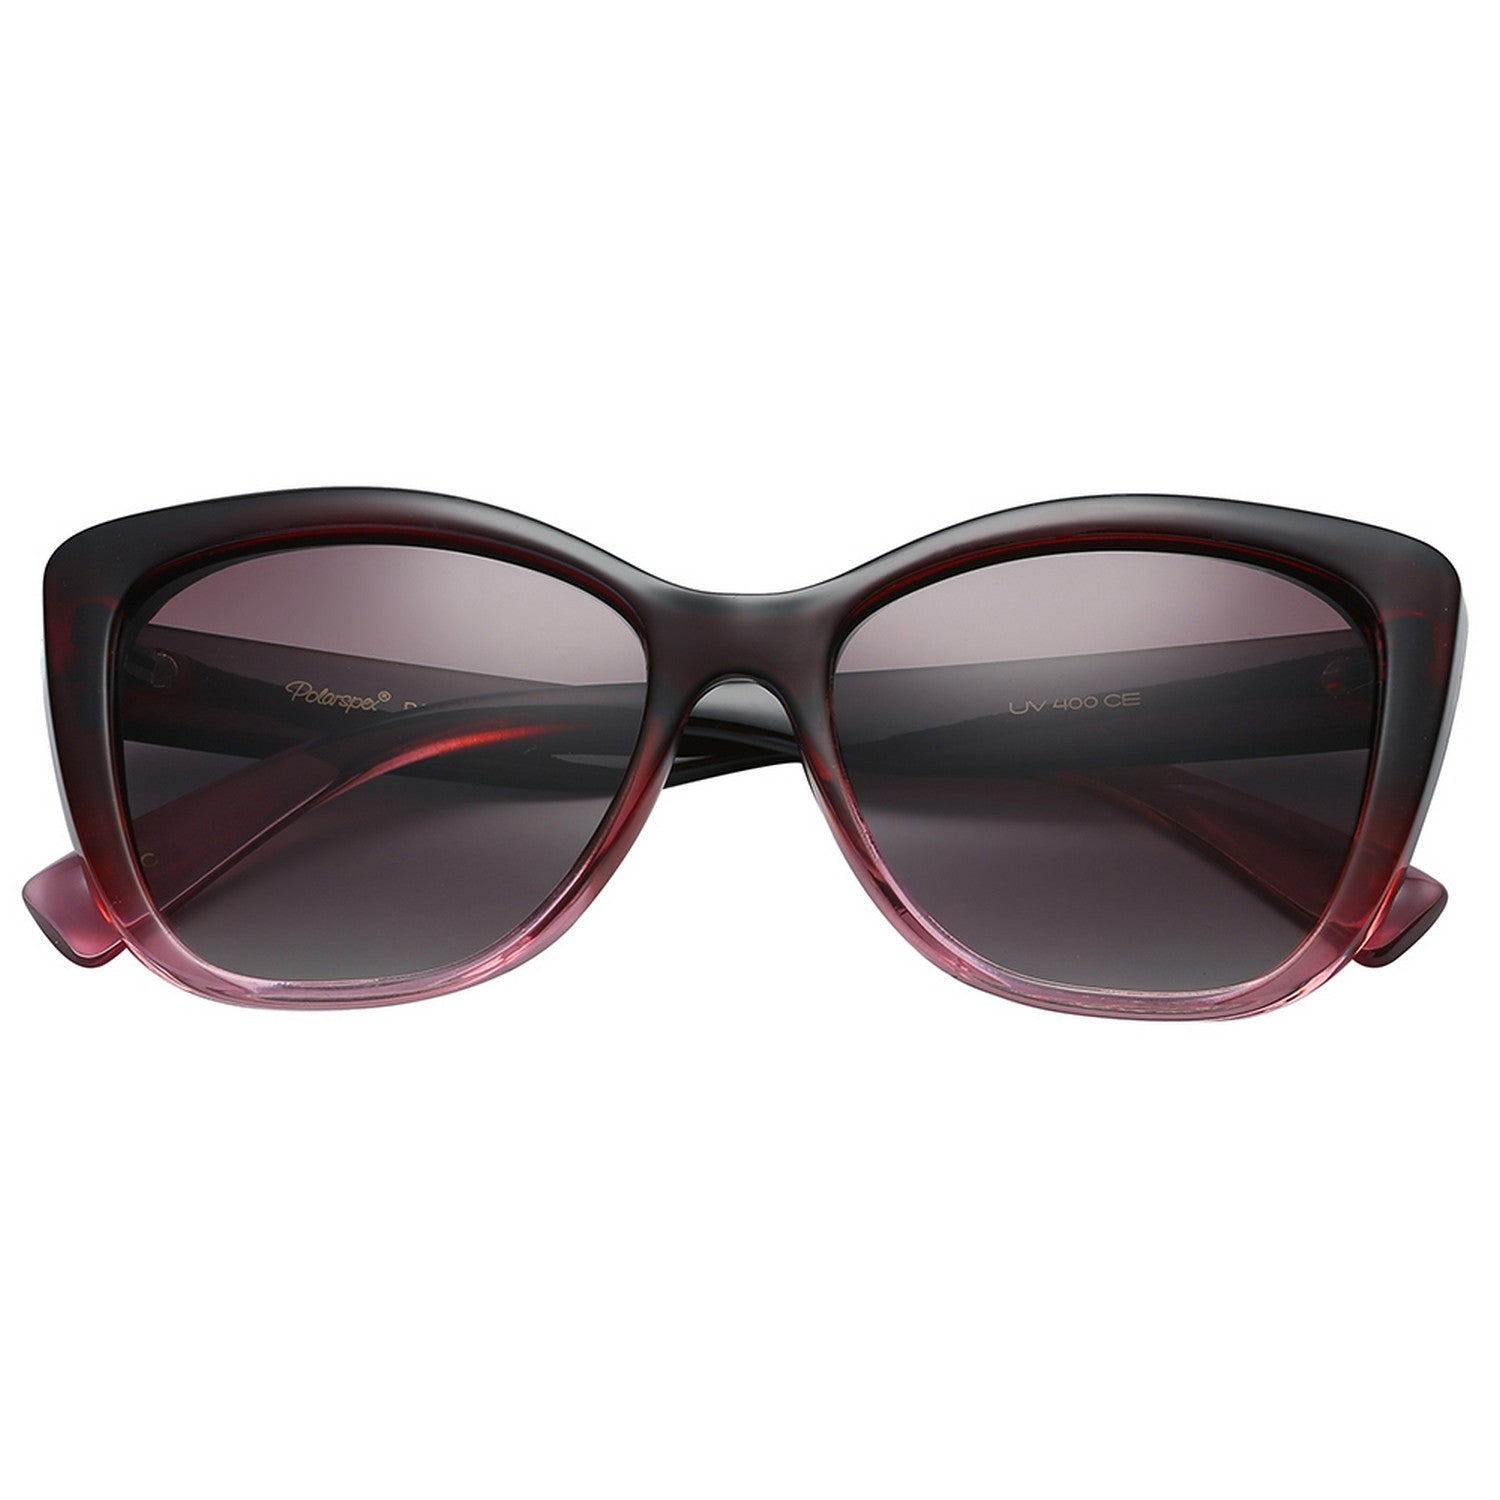 Polarspex Polarized Jackie-O Cat Eyes Style Sunglasses with Gradient Burgundy Frames and Polarized Gradient Brown Lenses for Women